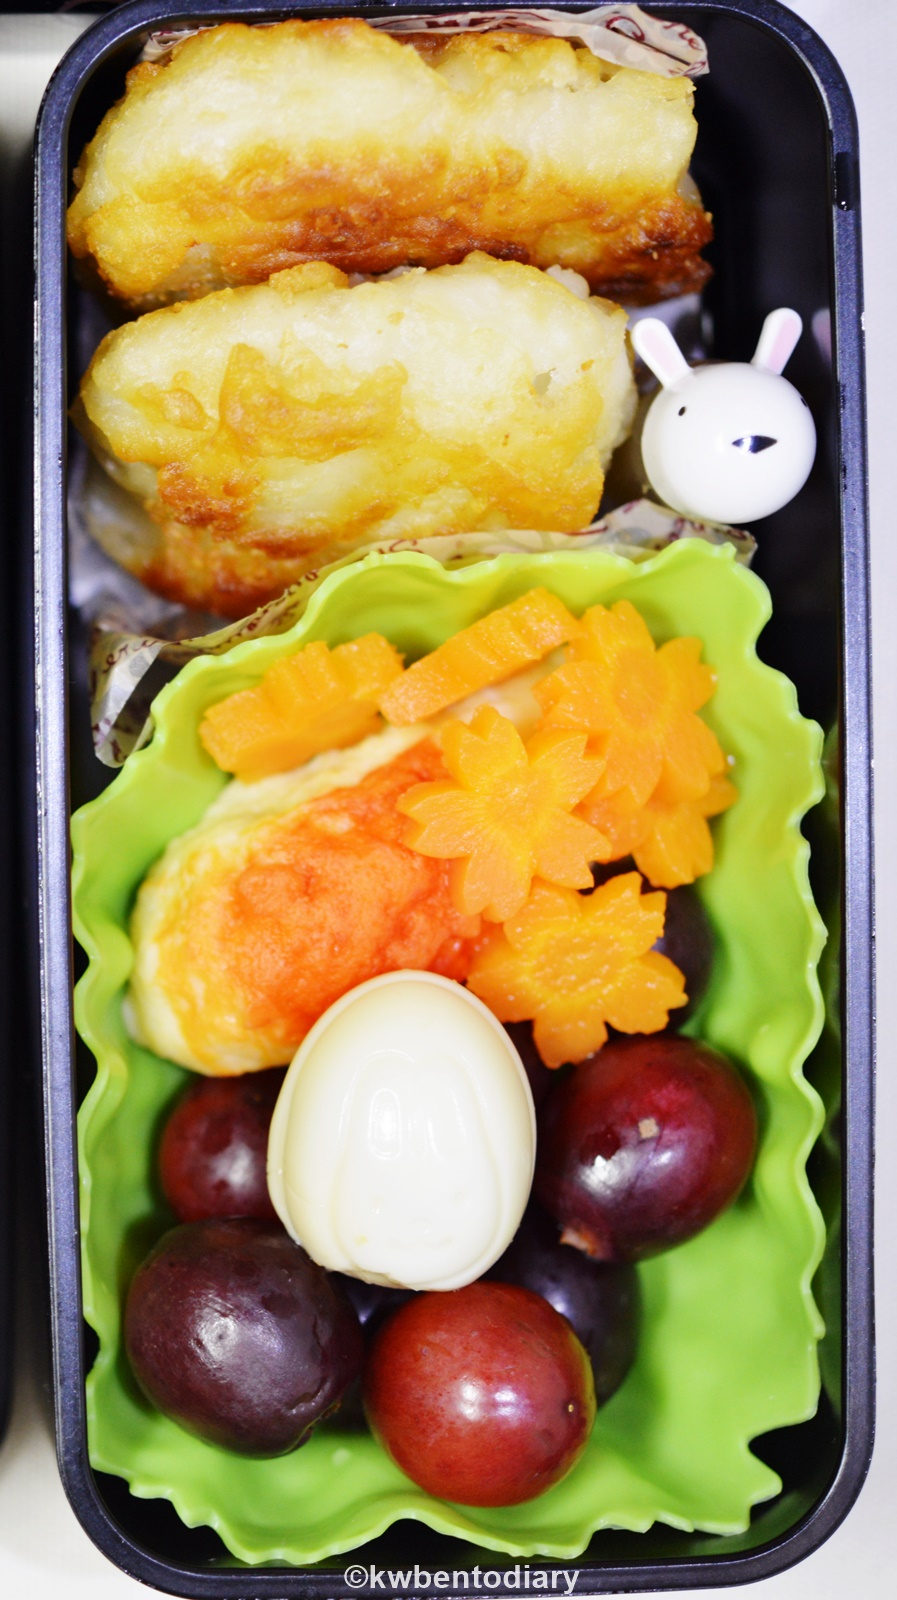 Karenwee 39 s bento diary bento2015 sep14 bunny sleeping bento for Side dishes for fried fish